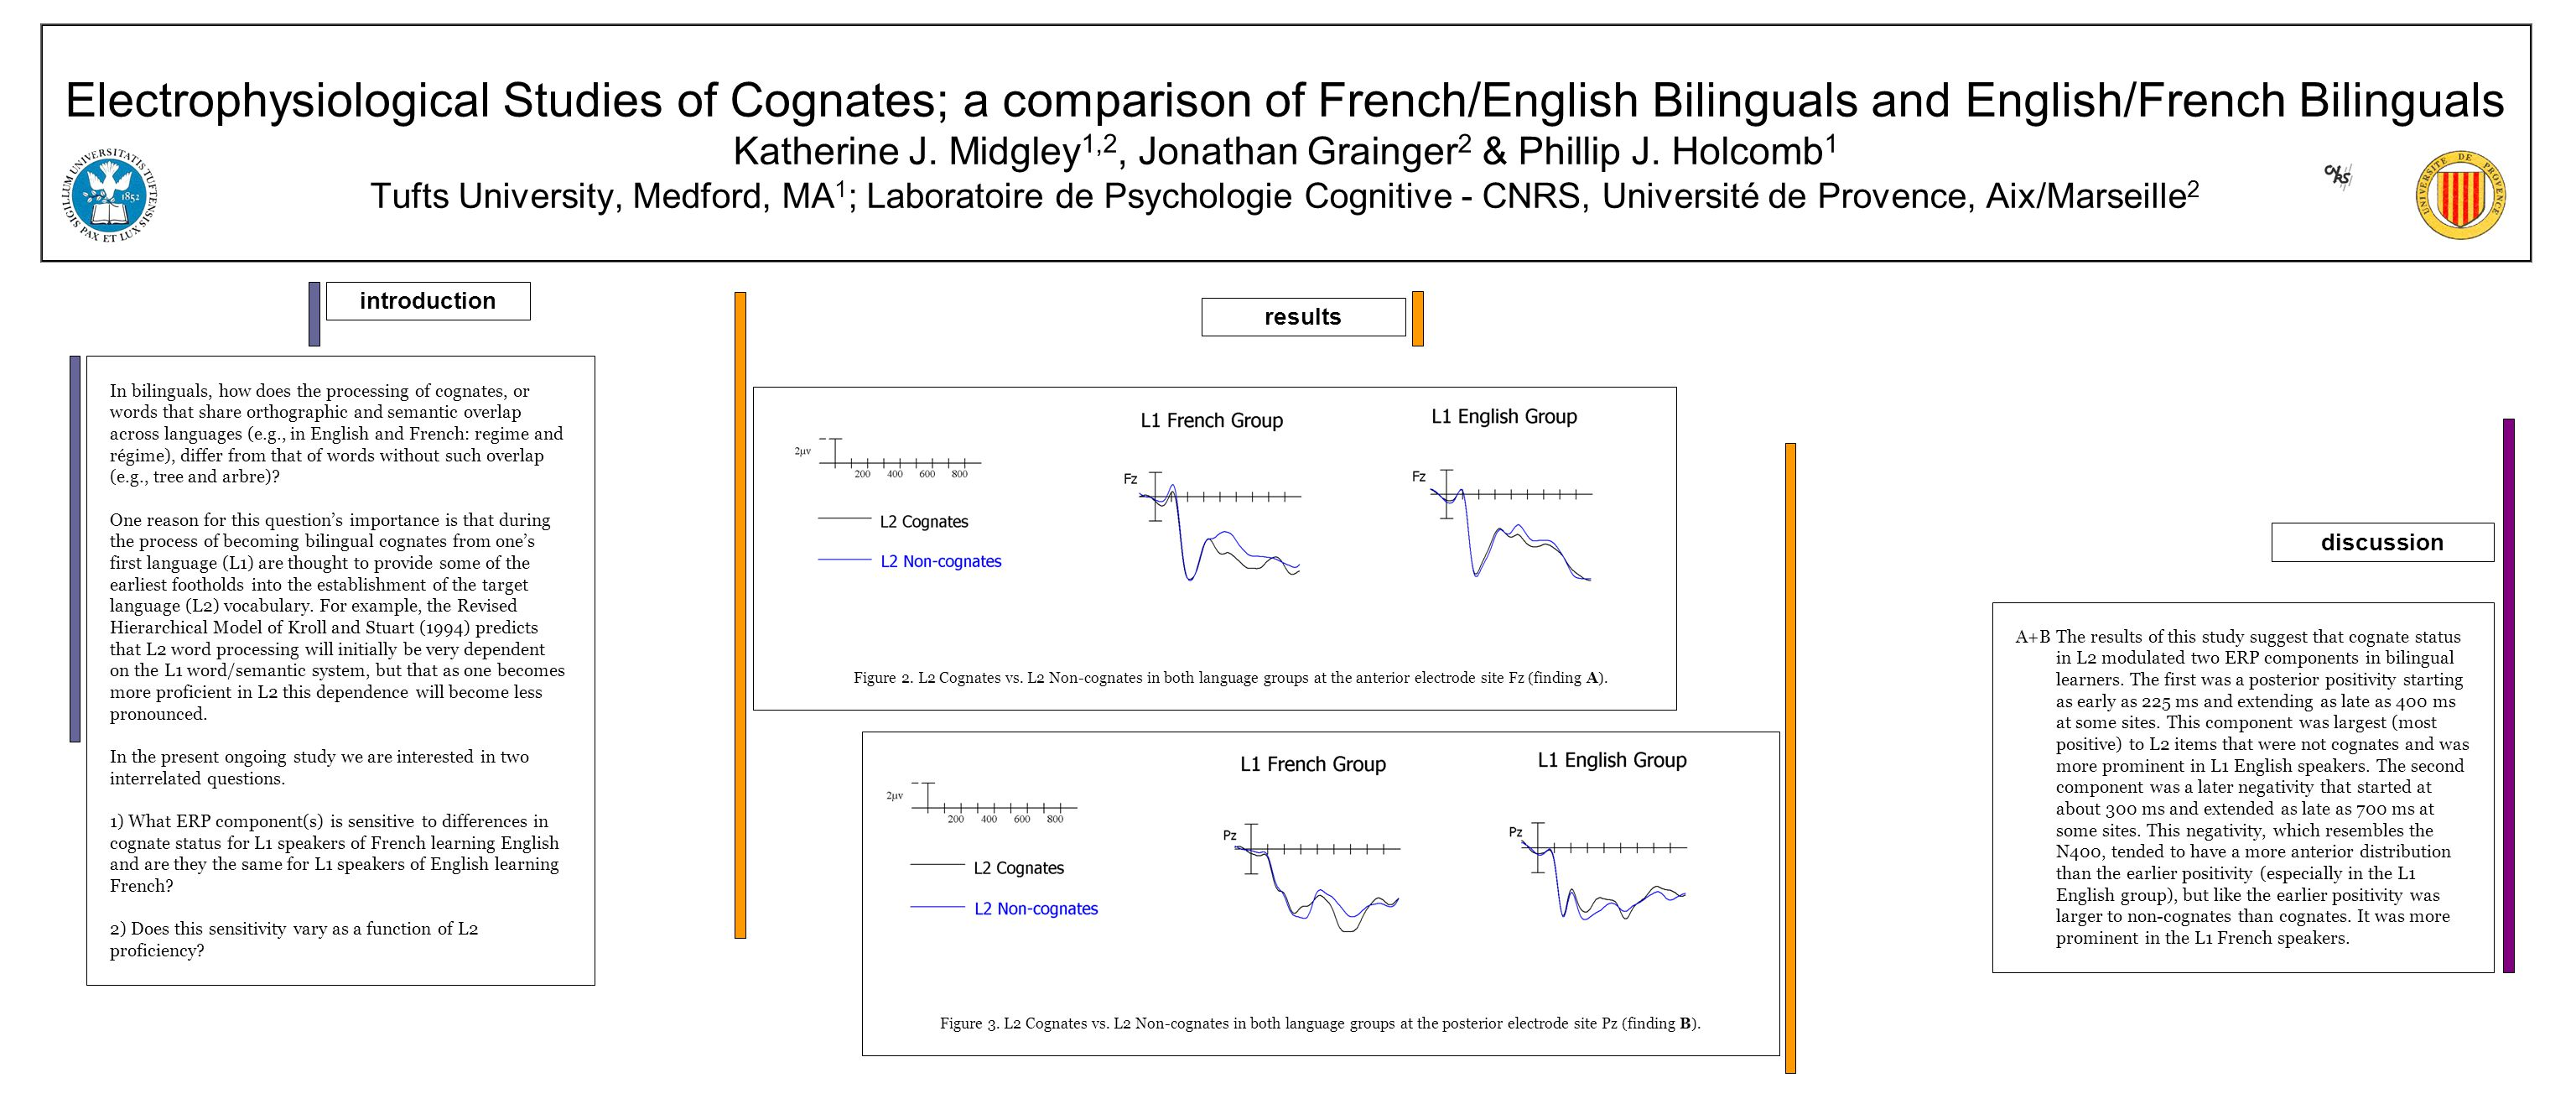 Figure 2. L2 Cognates vs.